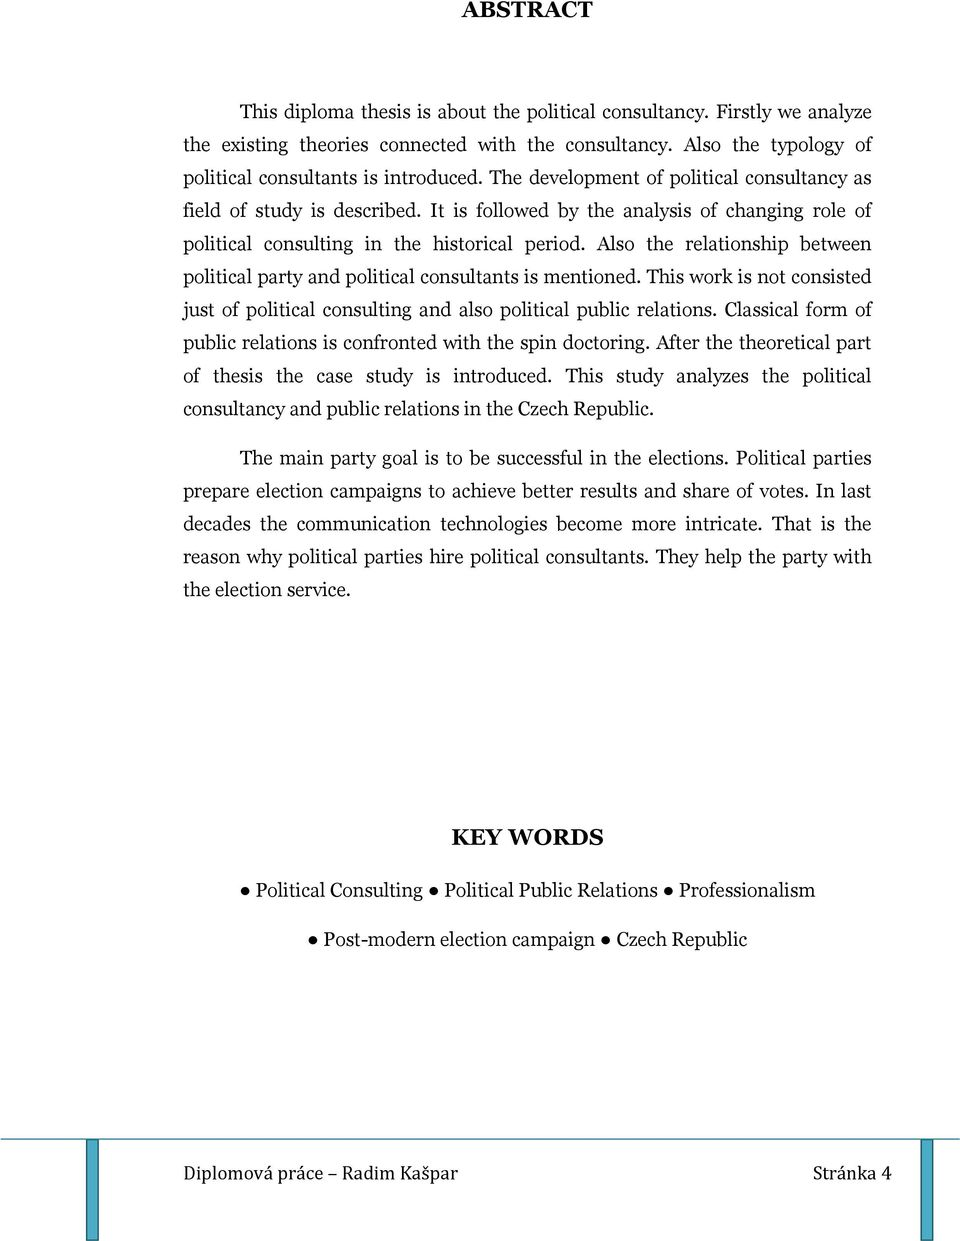 Also the relationship between political party and political consultants is mentioned. This work is not consisted just of political consulting and also political public relations.